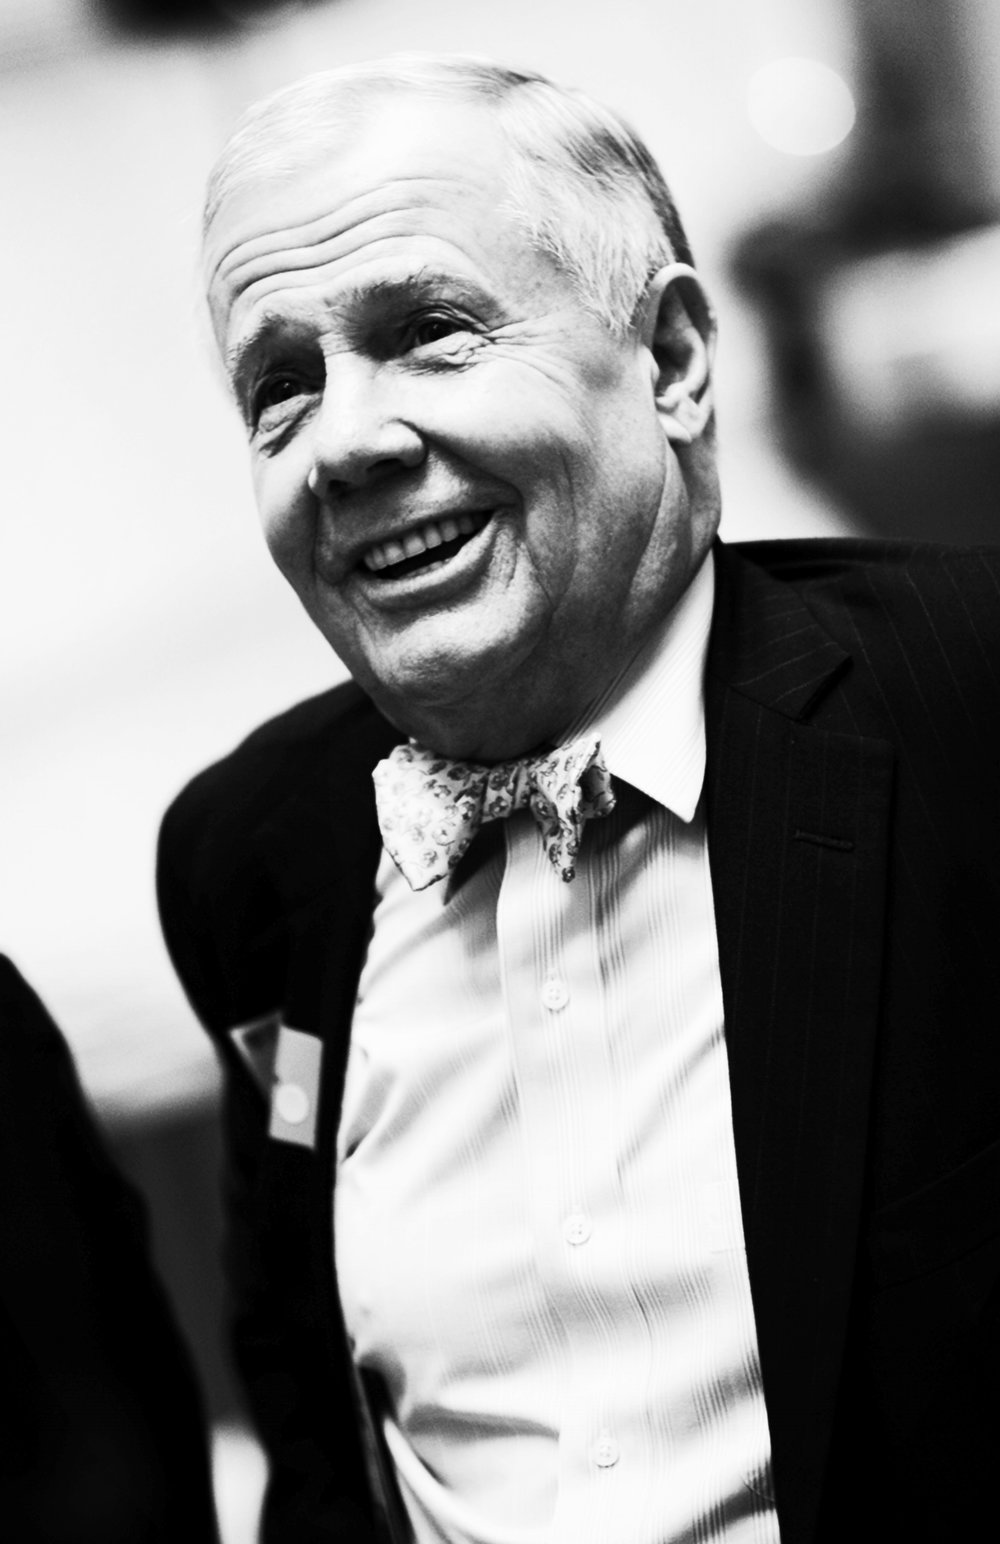 Jim Rogers     Investment Expert and Author   Jim Rogers, a native of Demopolis, Alabama, is an author, financial commentator, adventurer, and successful international investor.   After attending Yale and Oxford University, Rogers co-founded the Quantum Fund, a global-investment partnership, Rogers serves as a full professor of finance at the Columbia University Graduate School of Business, and, in 1989 and 1990, he was the moderator of WCBS's 'The Dreyfus Roundtable' and FNN's 'The Profit Motive with Jim Rogers'.